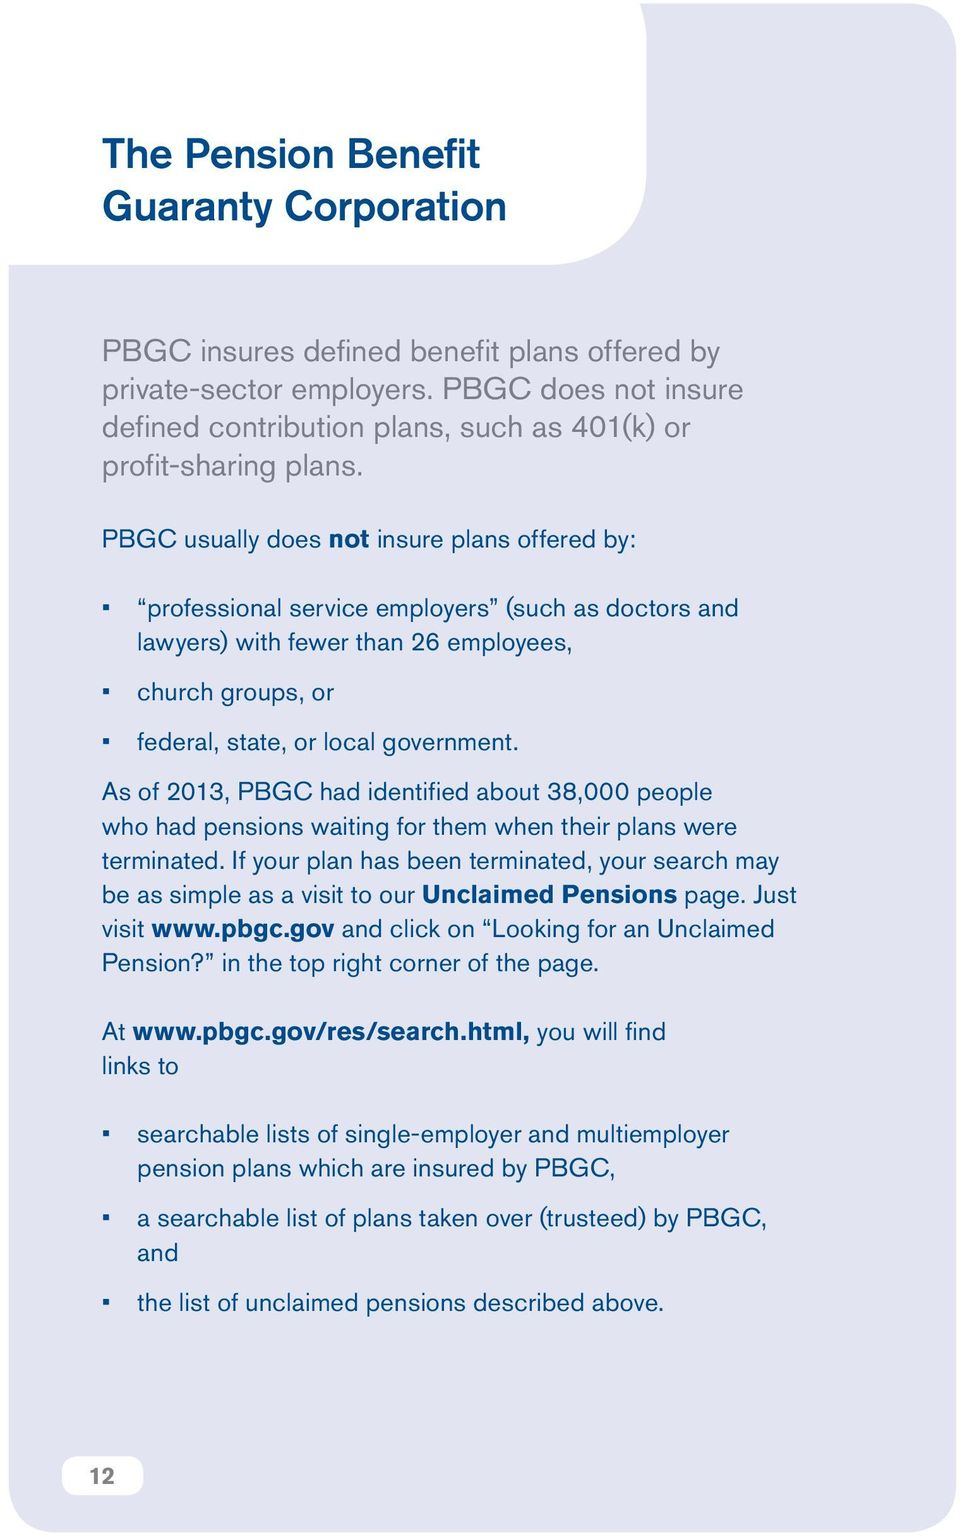 PBGC usually does not insure plans offered by: professional service employers (such as doctors and lawyers) with fewer than 26 employees, church groups, or federal, state, or local government.